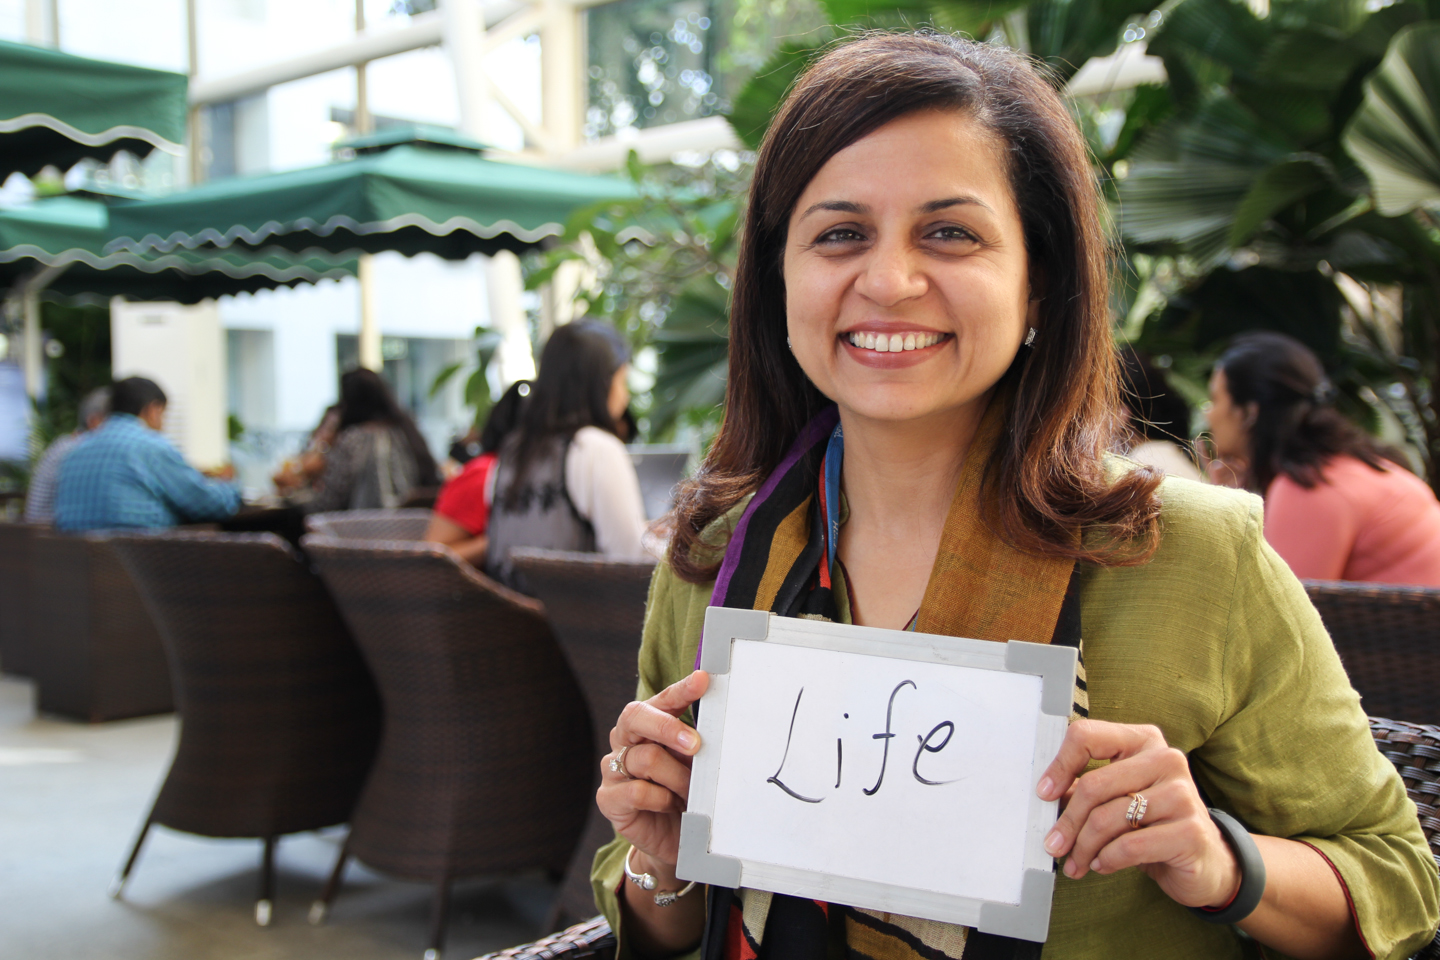 Geetu Verma, Executive Director of Foods at Hindustan Unilever, started drinking tea when she was growing up to help her stay awake to study. In college, tea became more of a social lubricant, as Geetu and her friends would meet at the Faculty of Management Studies tea shop to chat over pakoras and chai. Now tea is an essential part of Geetu's life professionally as well. 